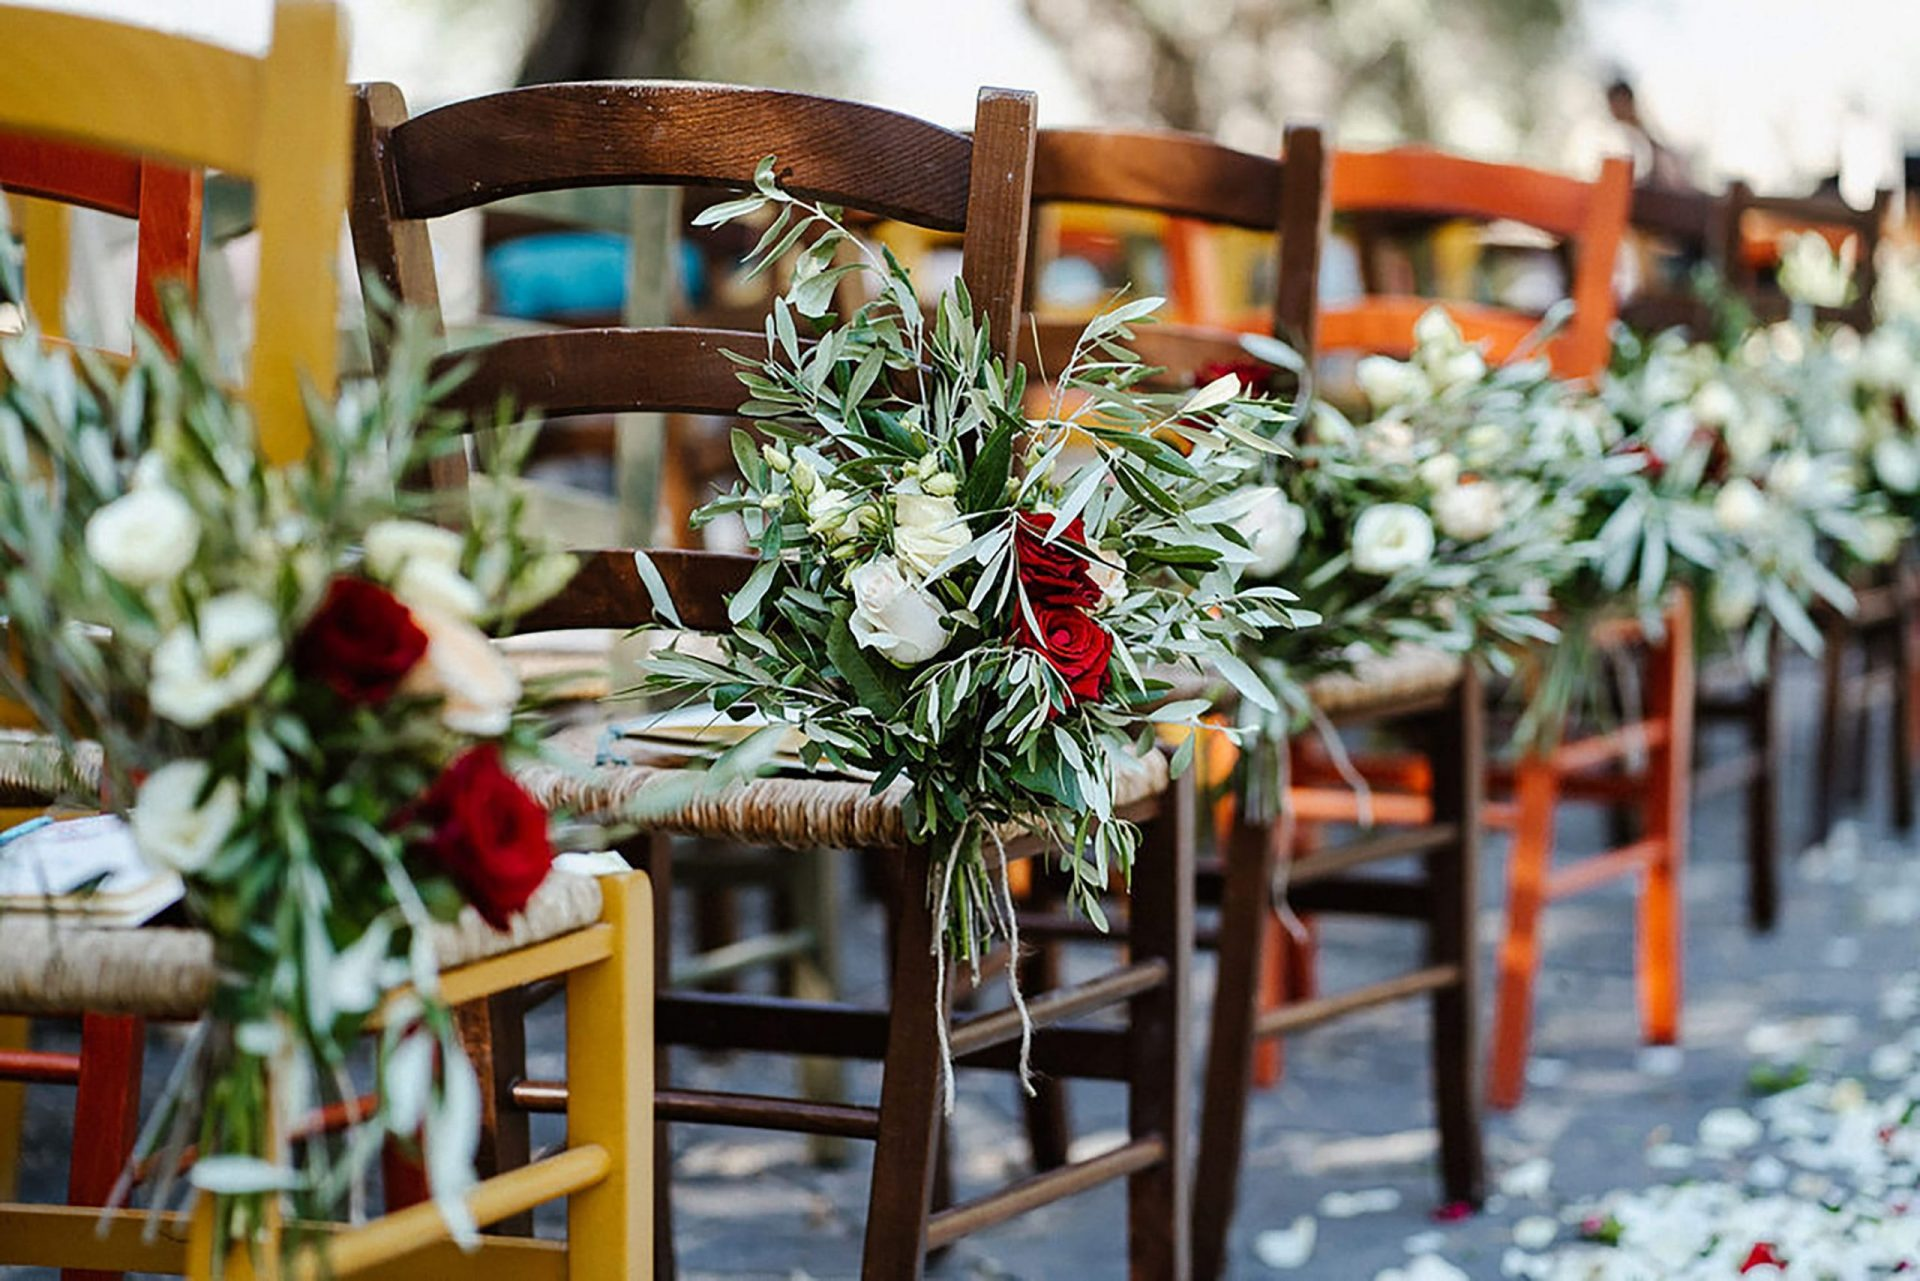 Marianna & Matteo, country inspired chairs decoration